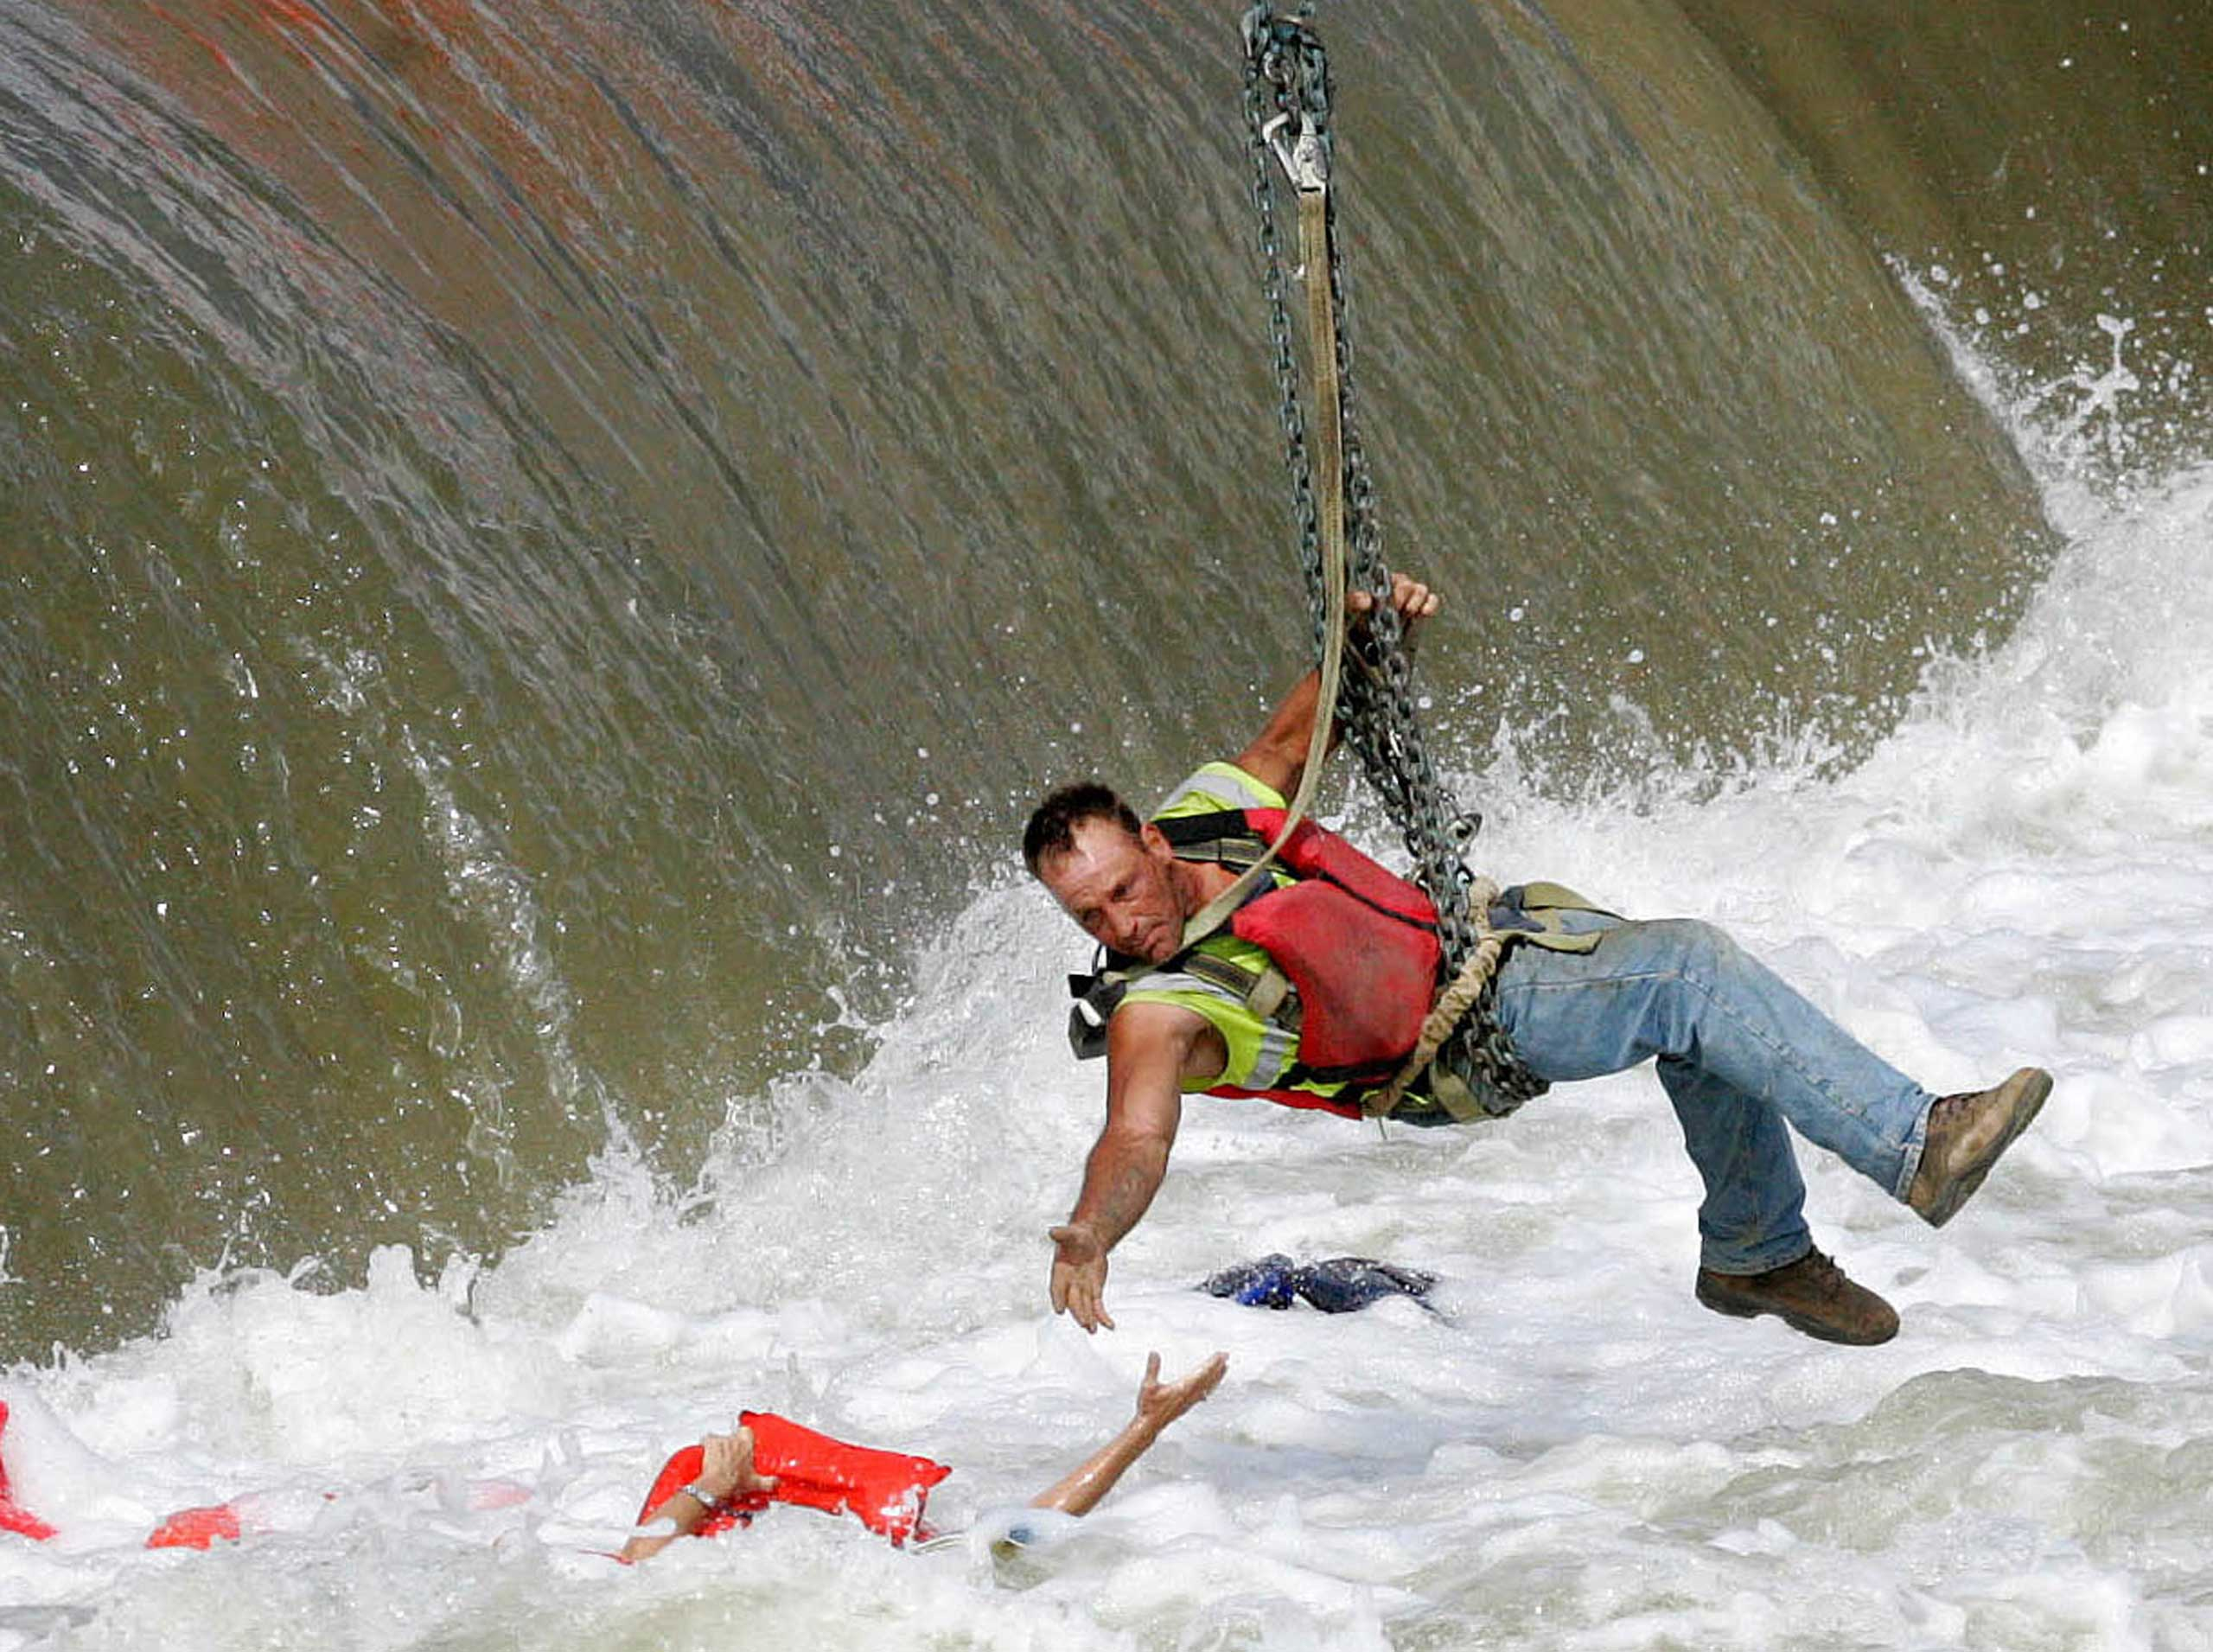 A local construction worker, suspended from a crane, rescues a woman who fell into the Des Moines River in Des Moines, Iowa in 2009.